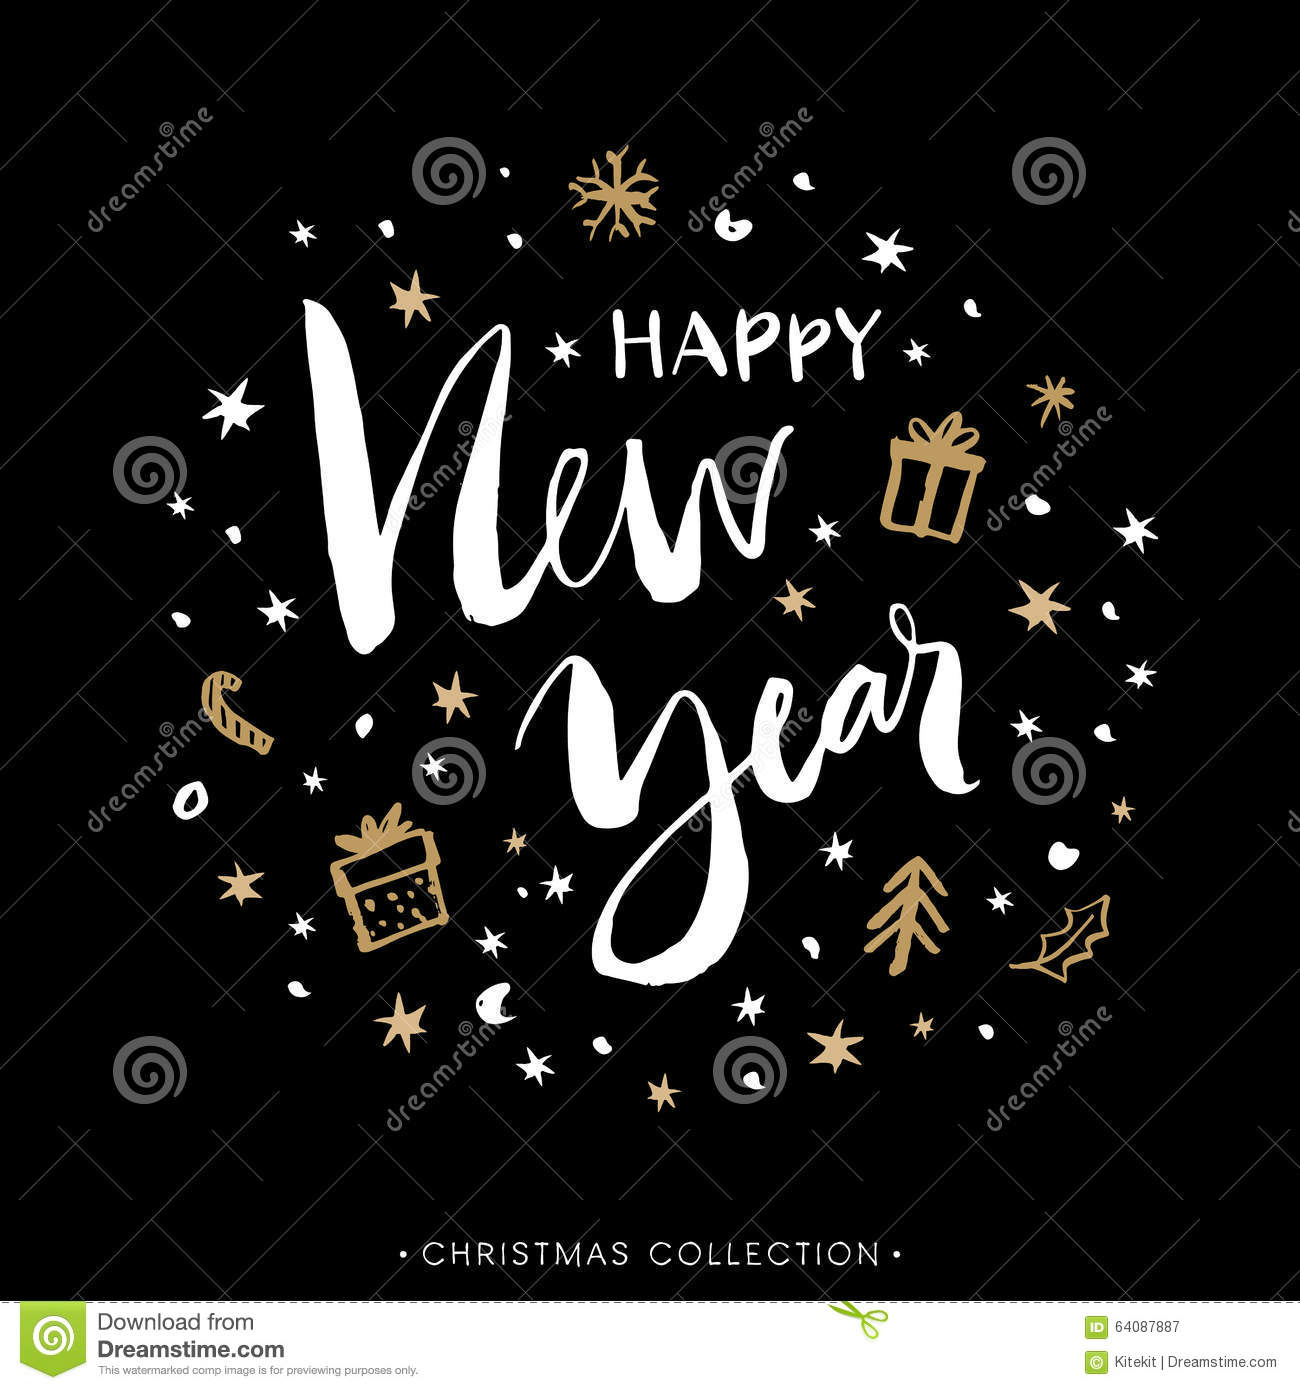 Happy new year christmas greeting card with calligraphy